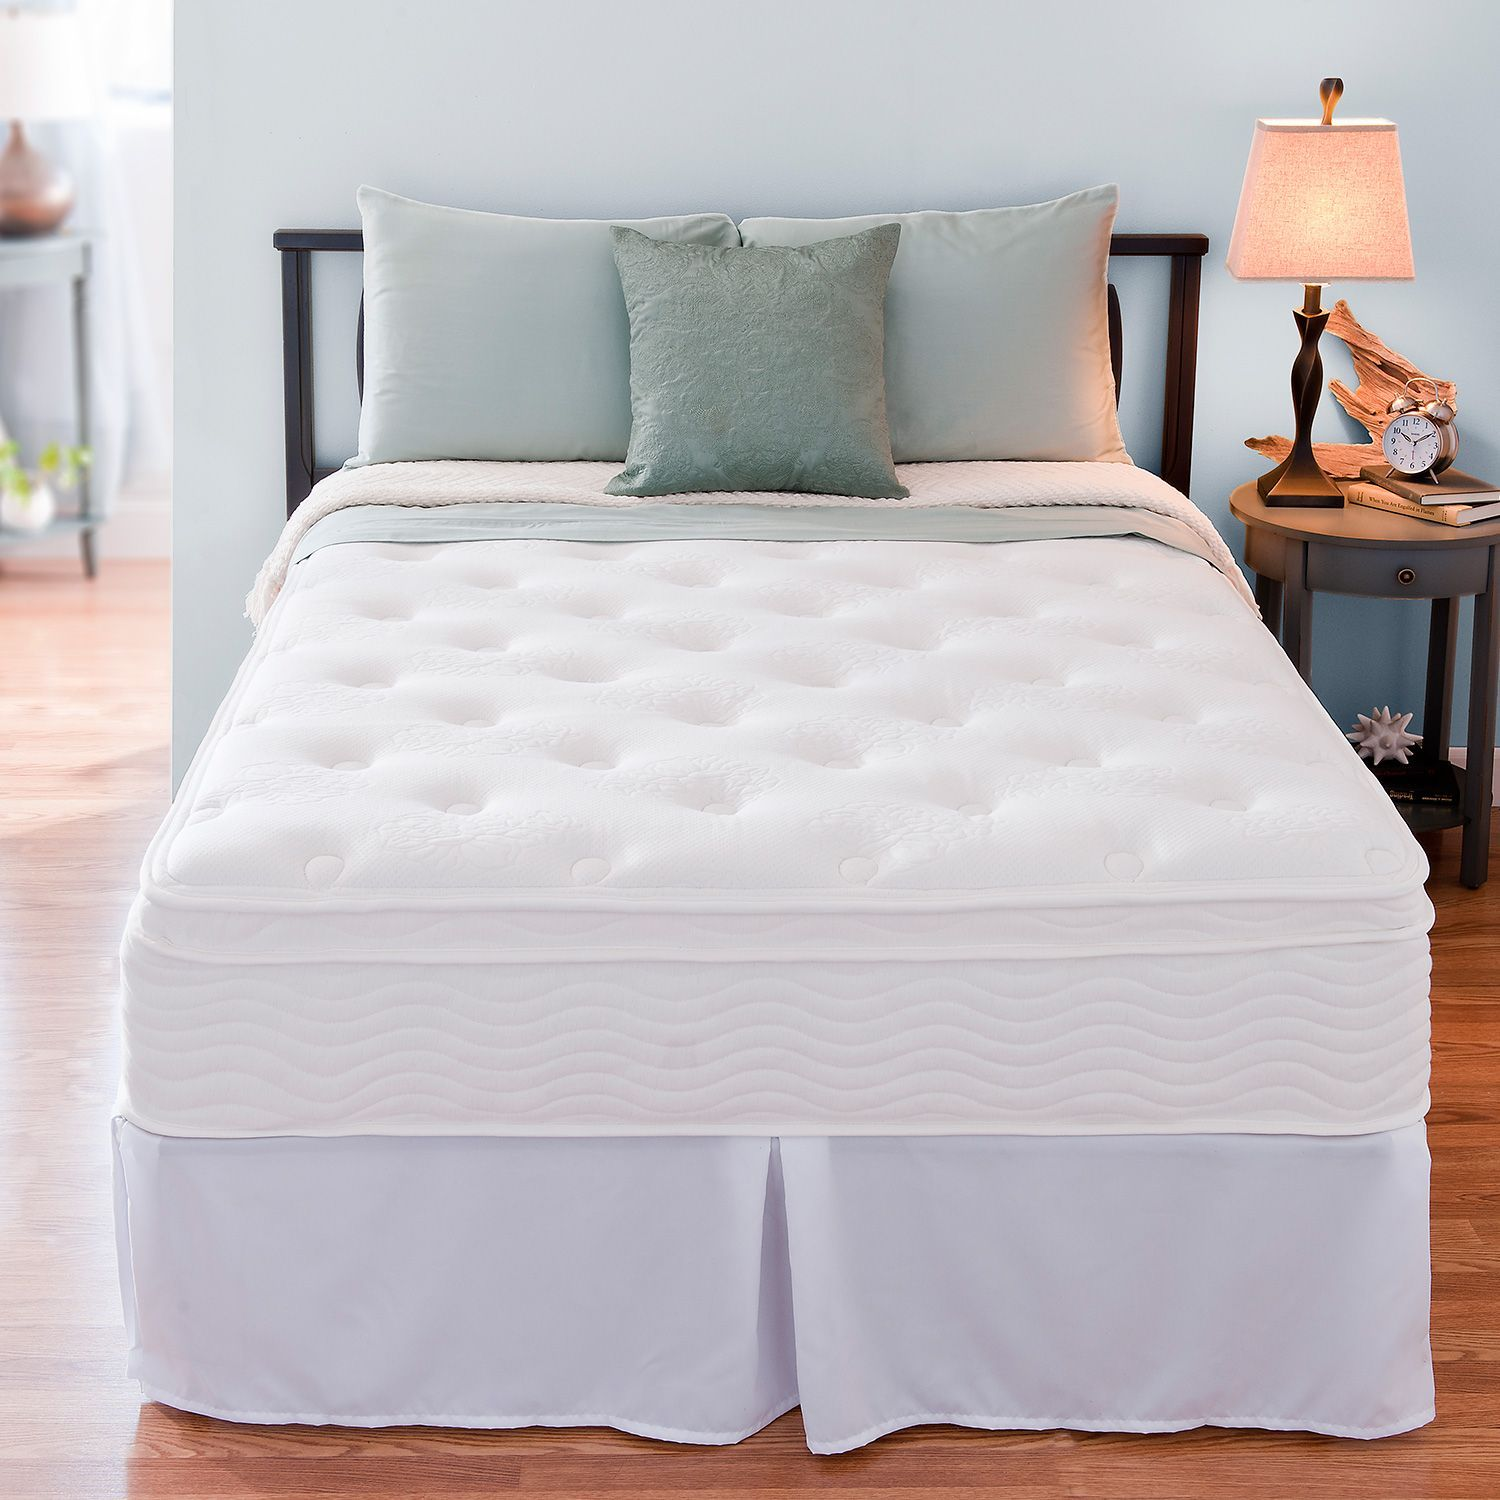 12 Night Therapy Euro Box Top Spring Mattress Bed Frame Set